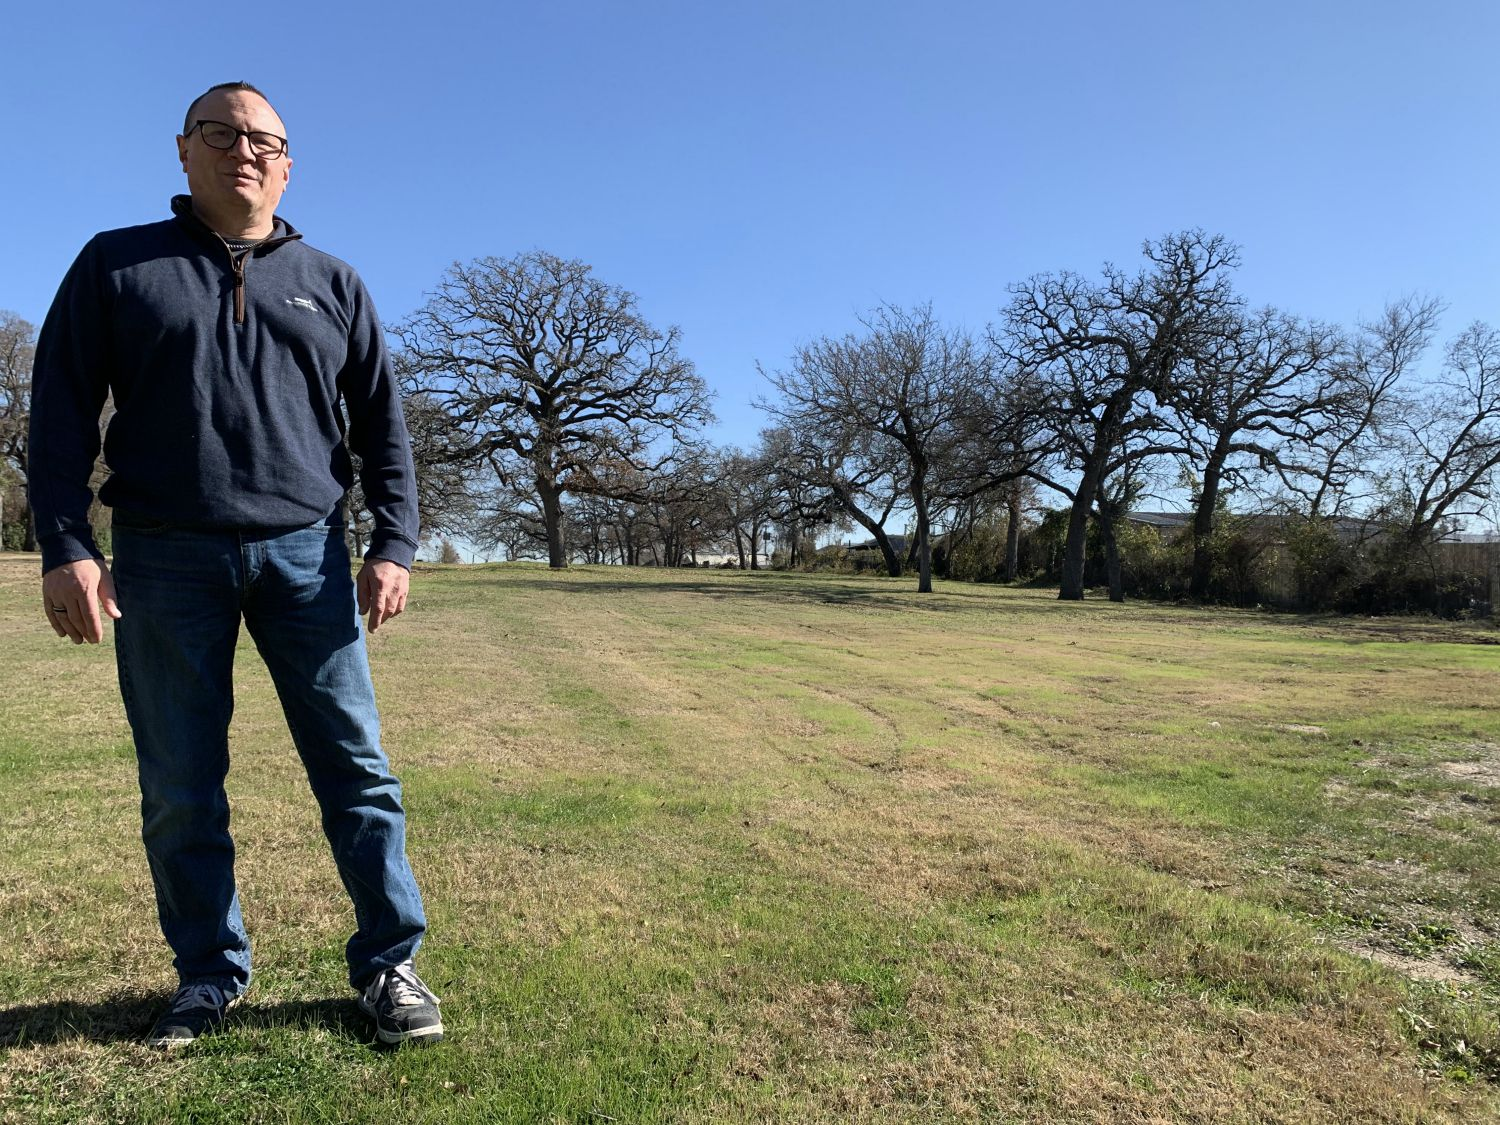 """Might as well be a Civil War battlefield,"" said Dan Babb as we walked the 3 acres of burial ground where you would never know more than 2,000 people had been buried between 1932 and 1976."